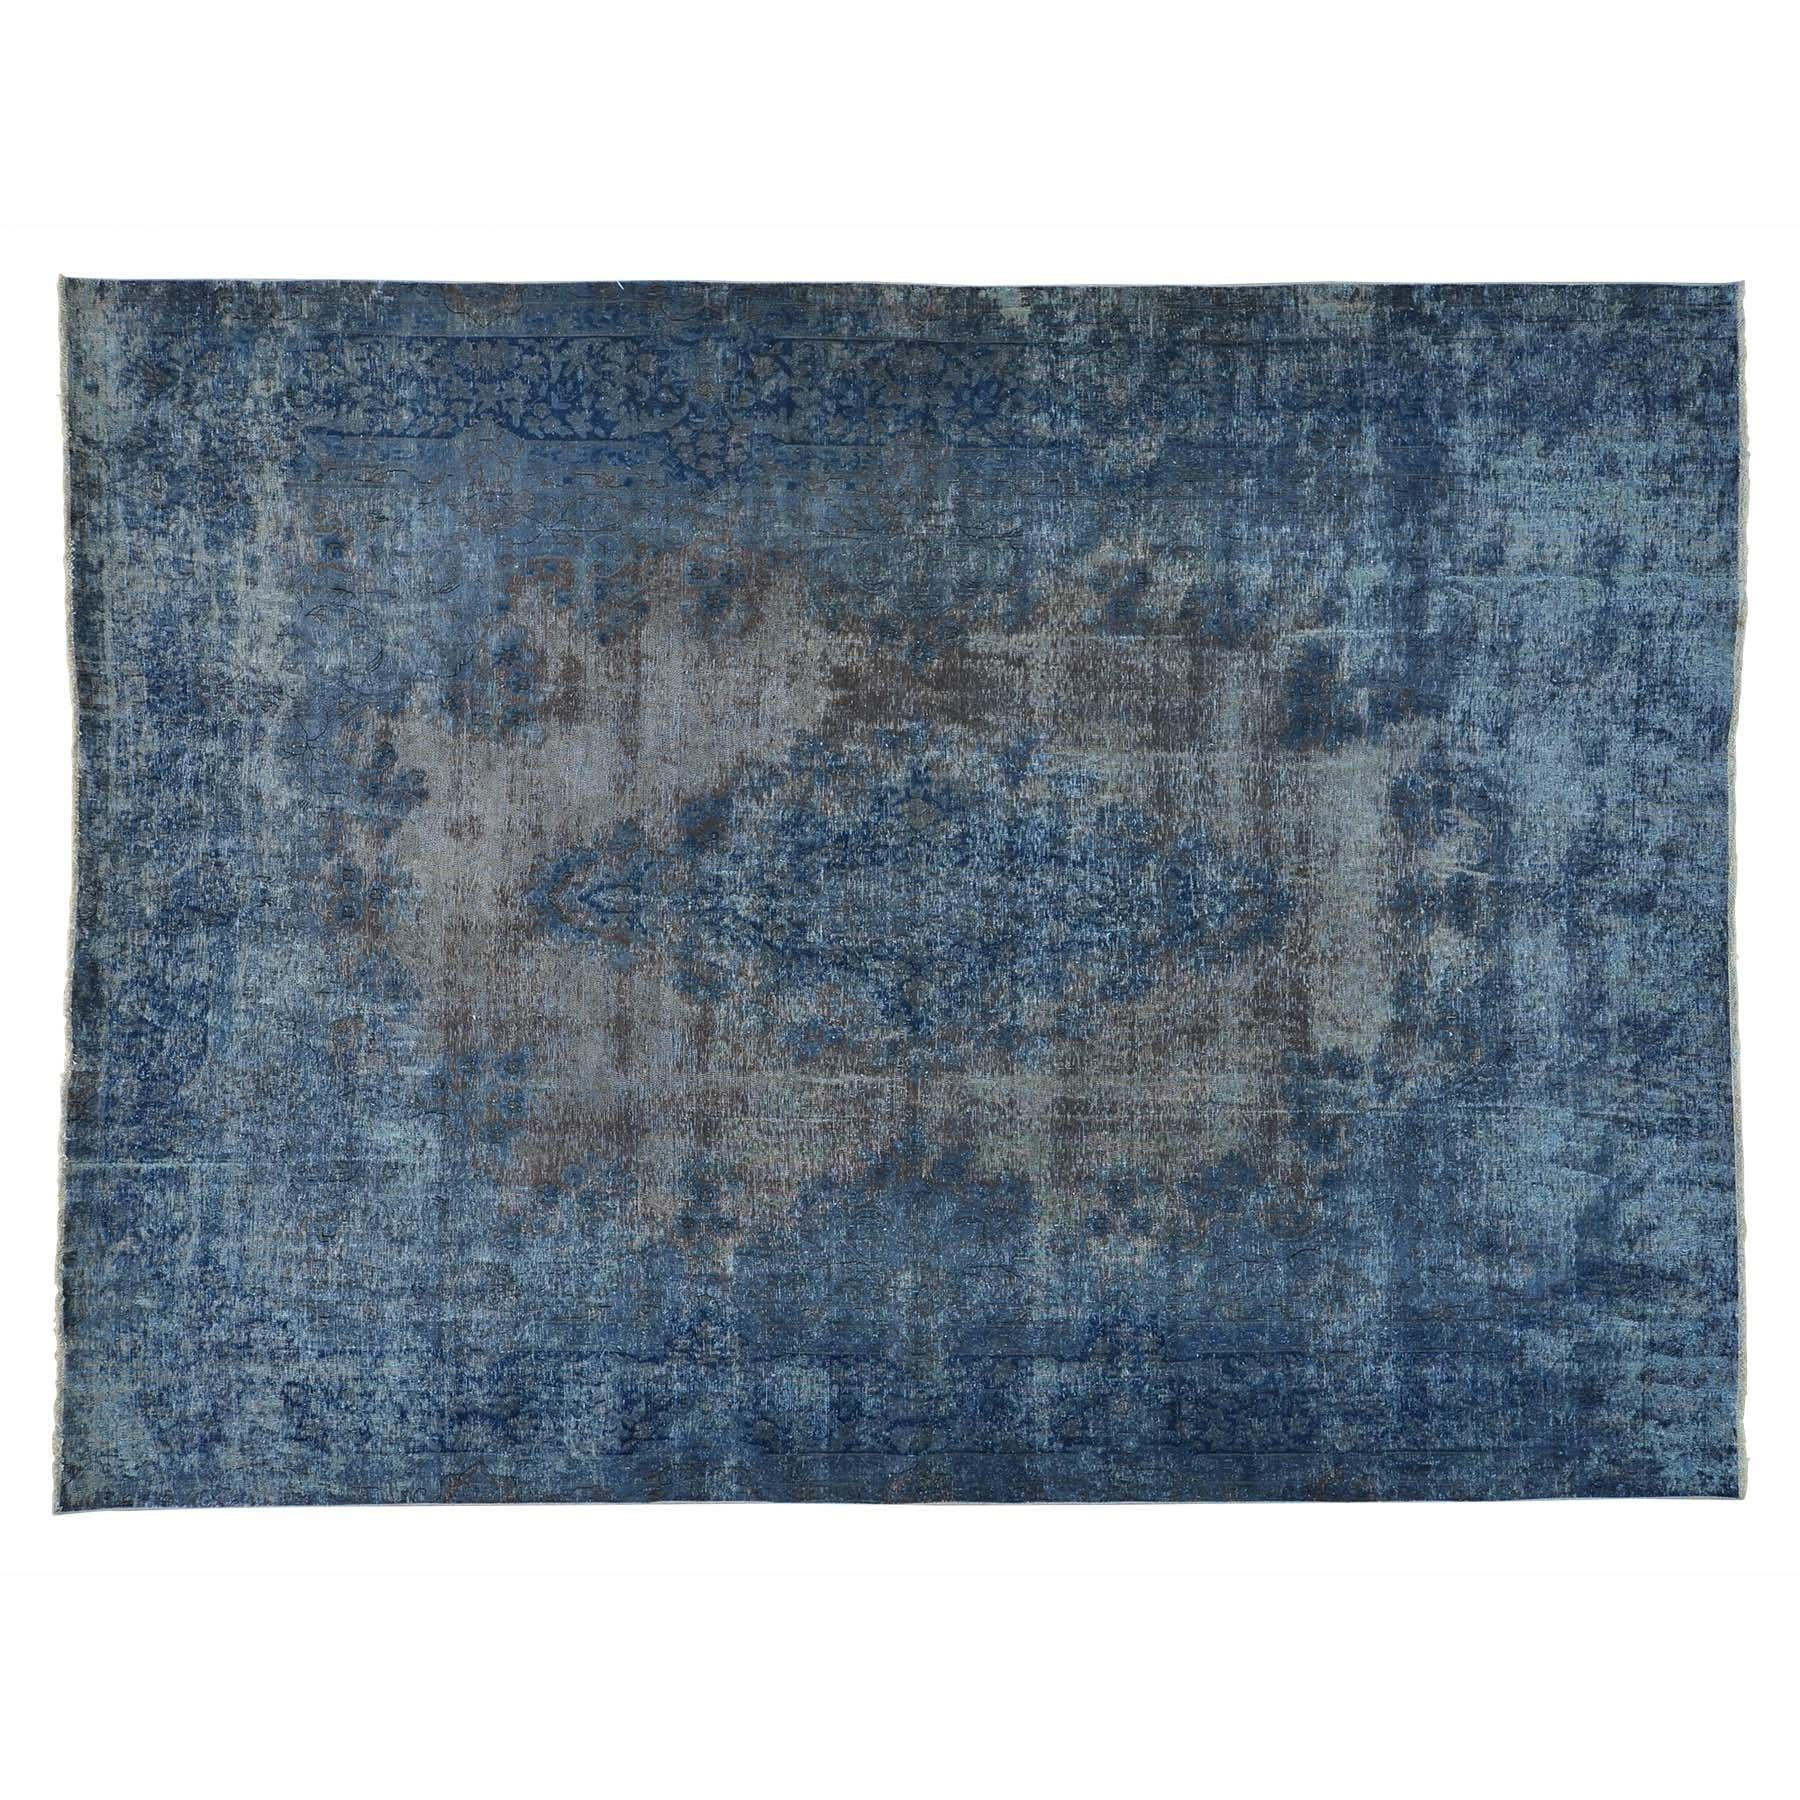 "1800getarug Refurbished Overdyed Worn Down Old Persian Kerman Hand-Knotted Rug (9'7 x 13') (Exact Size: 9'7"" x 13'0""), Blue, Size 10' x 12' (Wool, Oriental)"